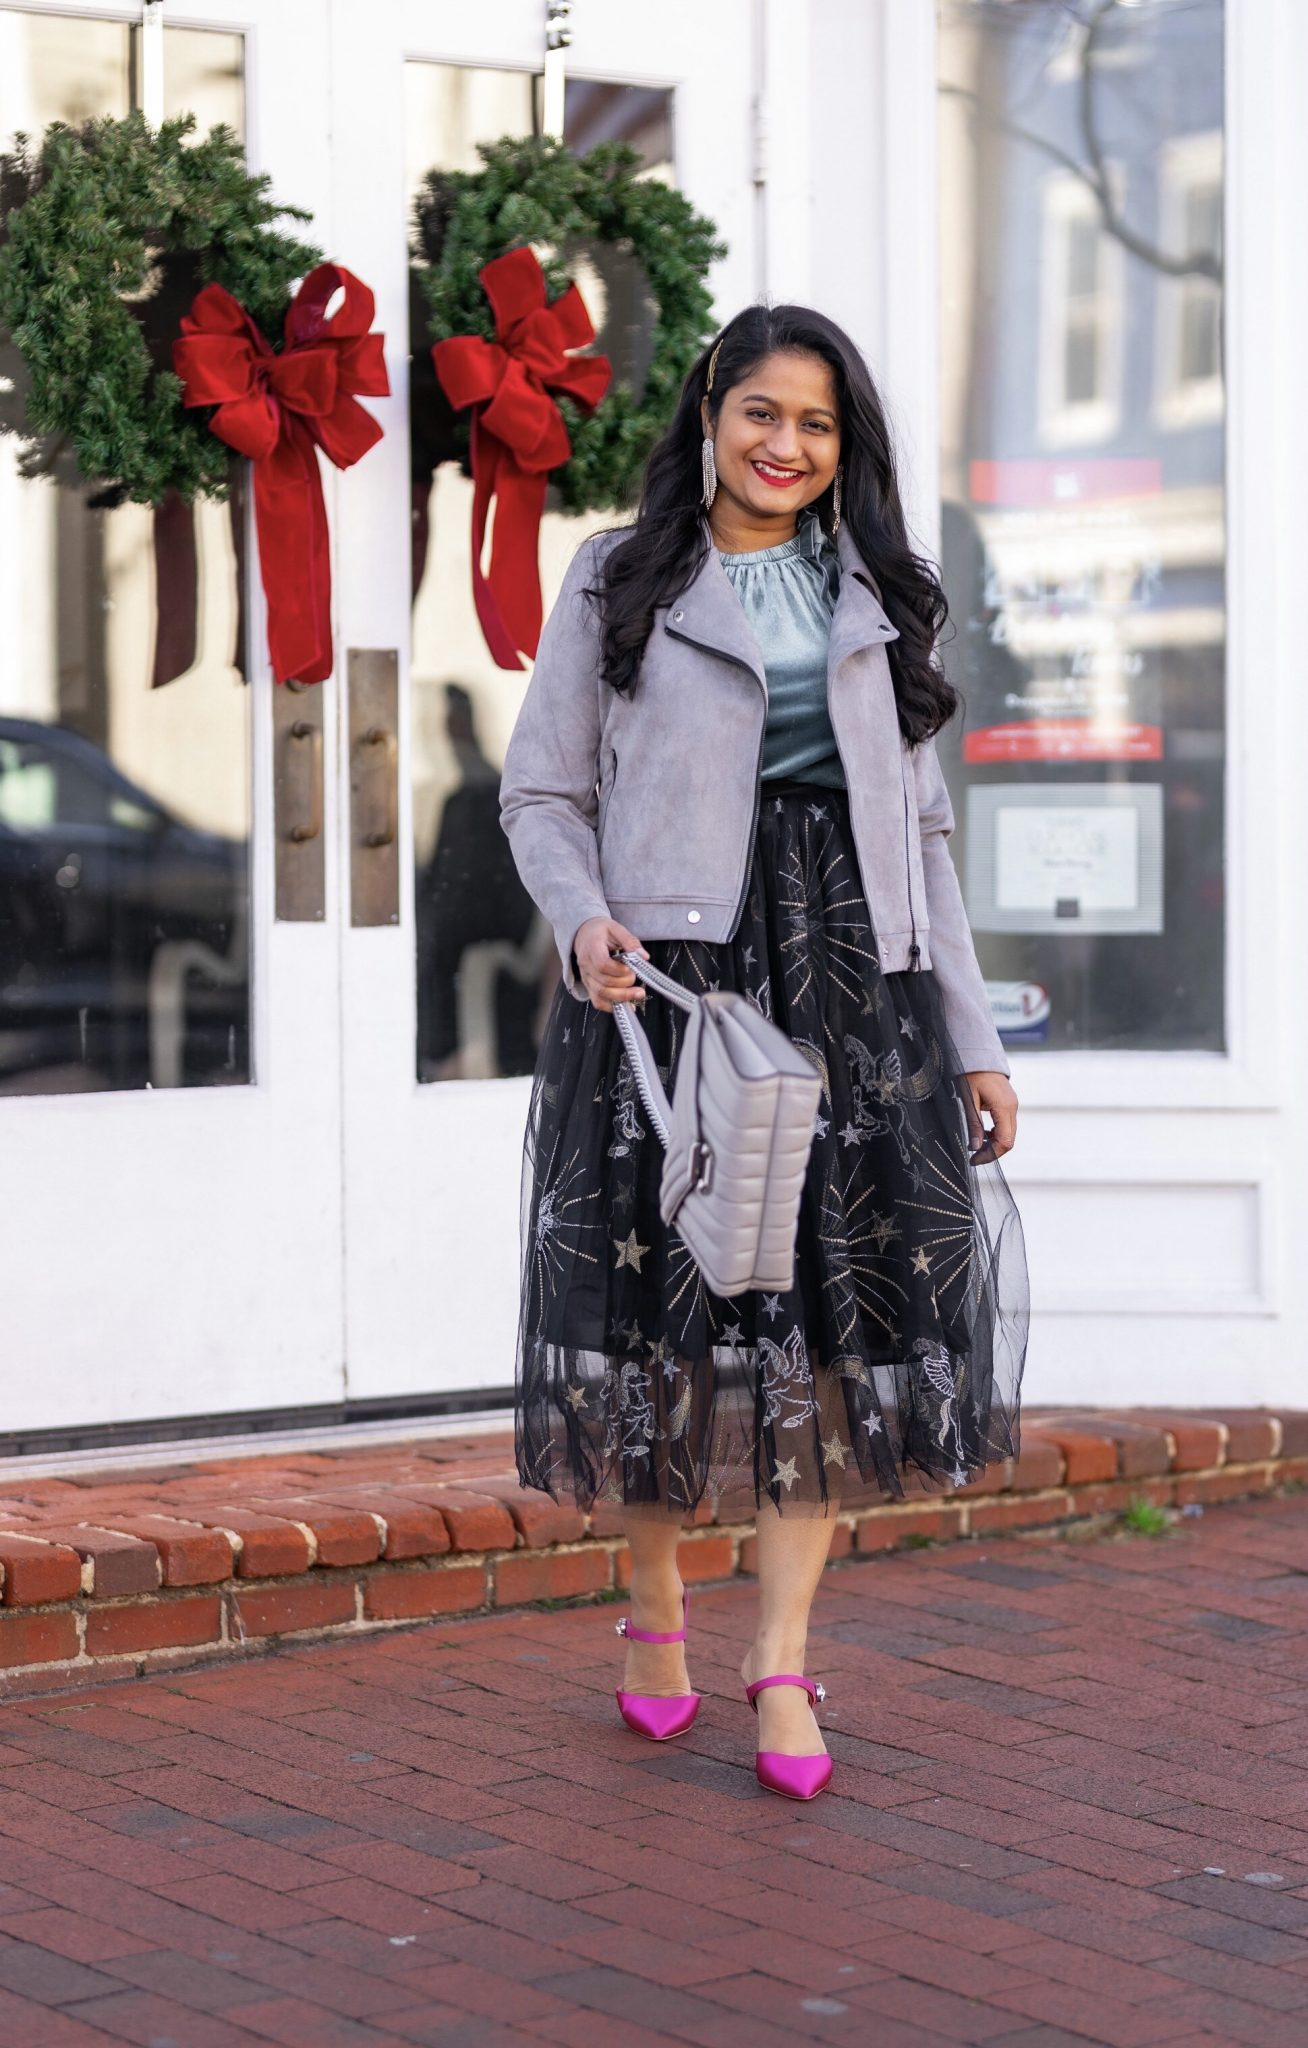 Affordable New Years Eve Outfits to Ring In the New Year featured by top US modest blog, Dreaming Loud: Alcea Rosea Black Tulle tutu Skirt, Velvet Camisole, Banana Republic Satin Pink Heels, Allegra K Fashion Faux Suede Jacket3